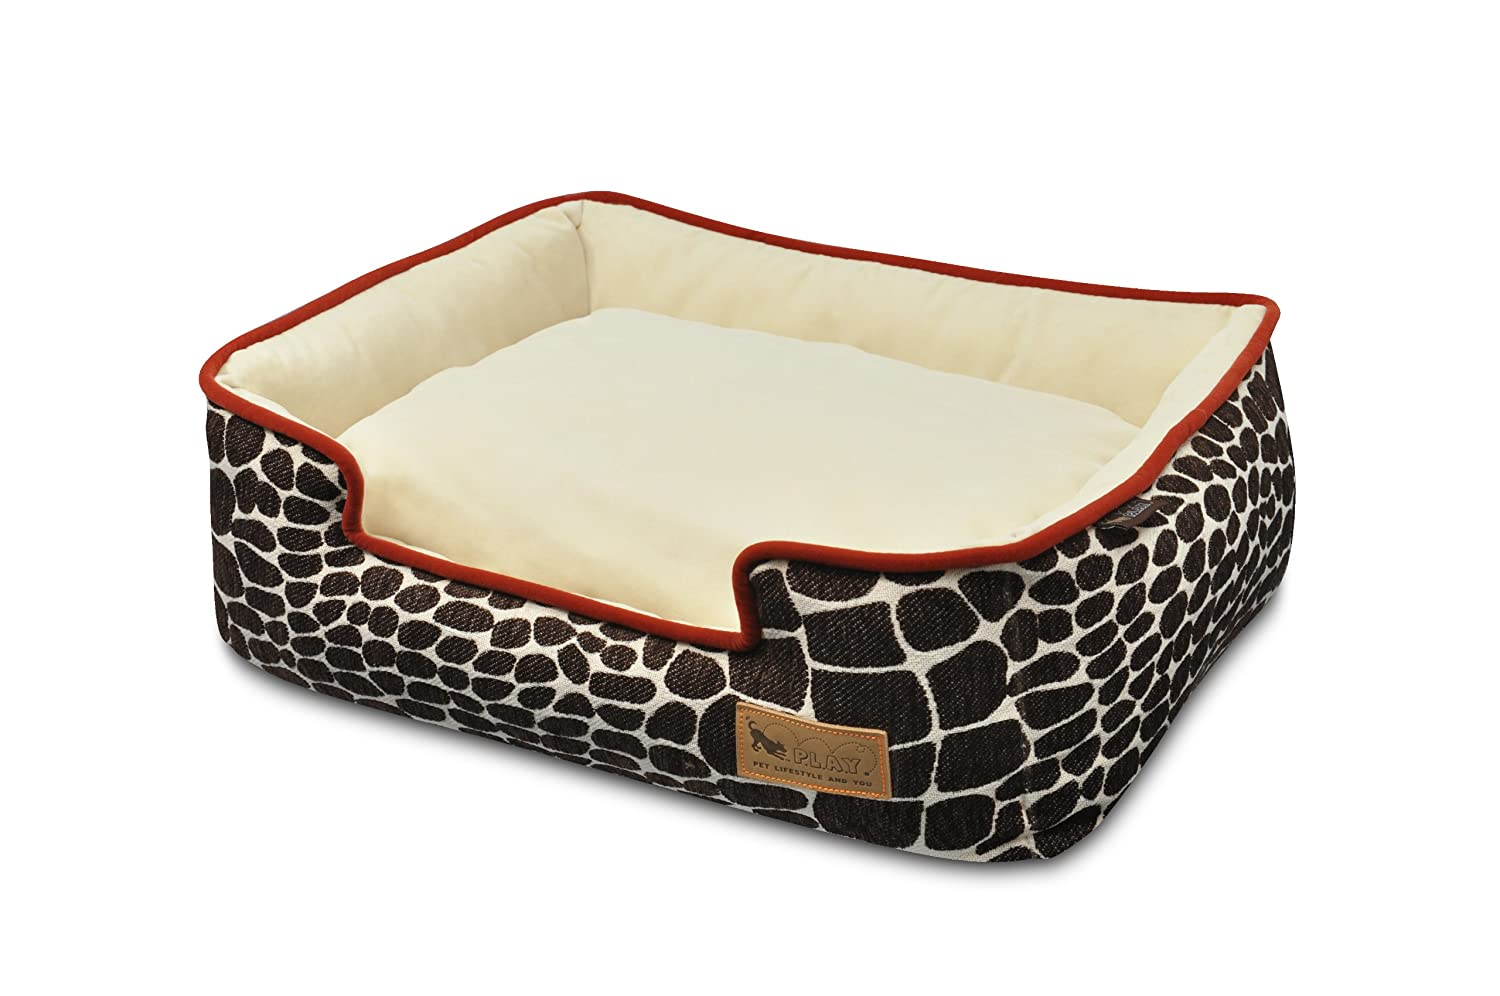 P.L.A.Y - Pet Lifestyle & You PY3004ASF Lounge Bett Kalahari, S, braun